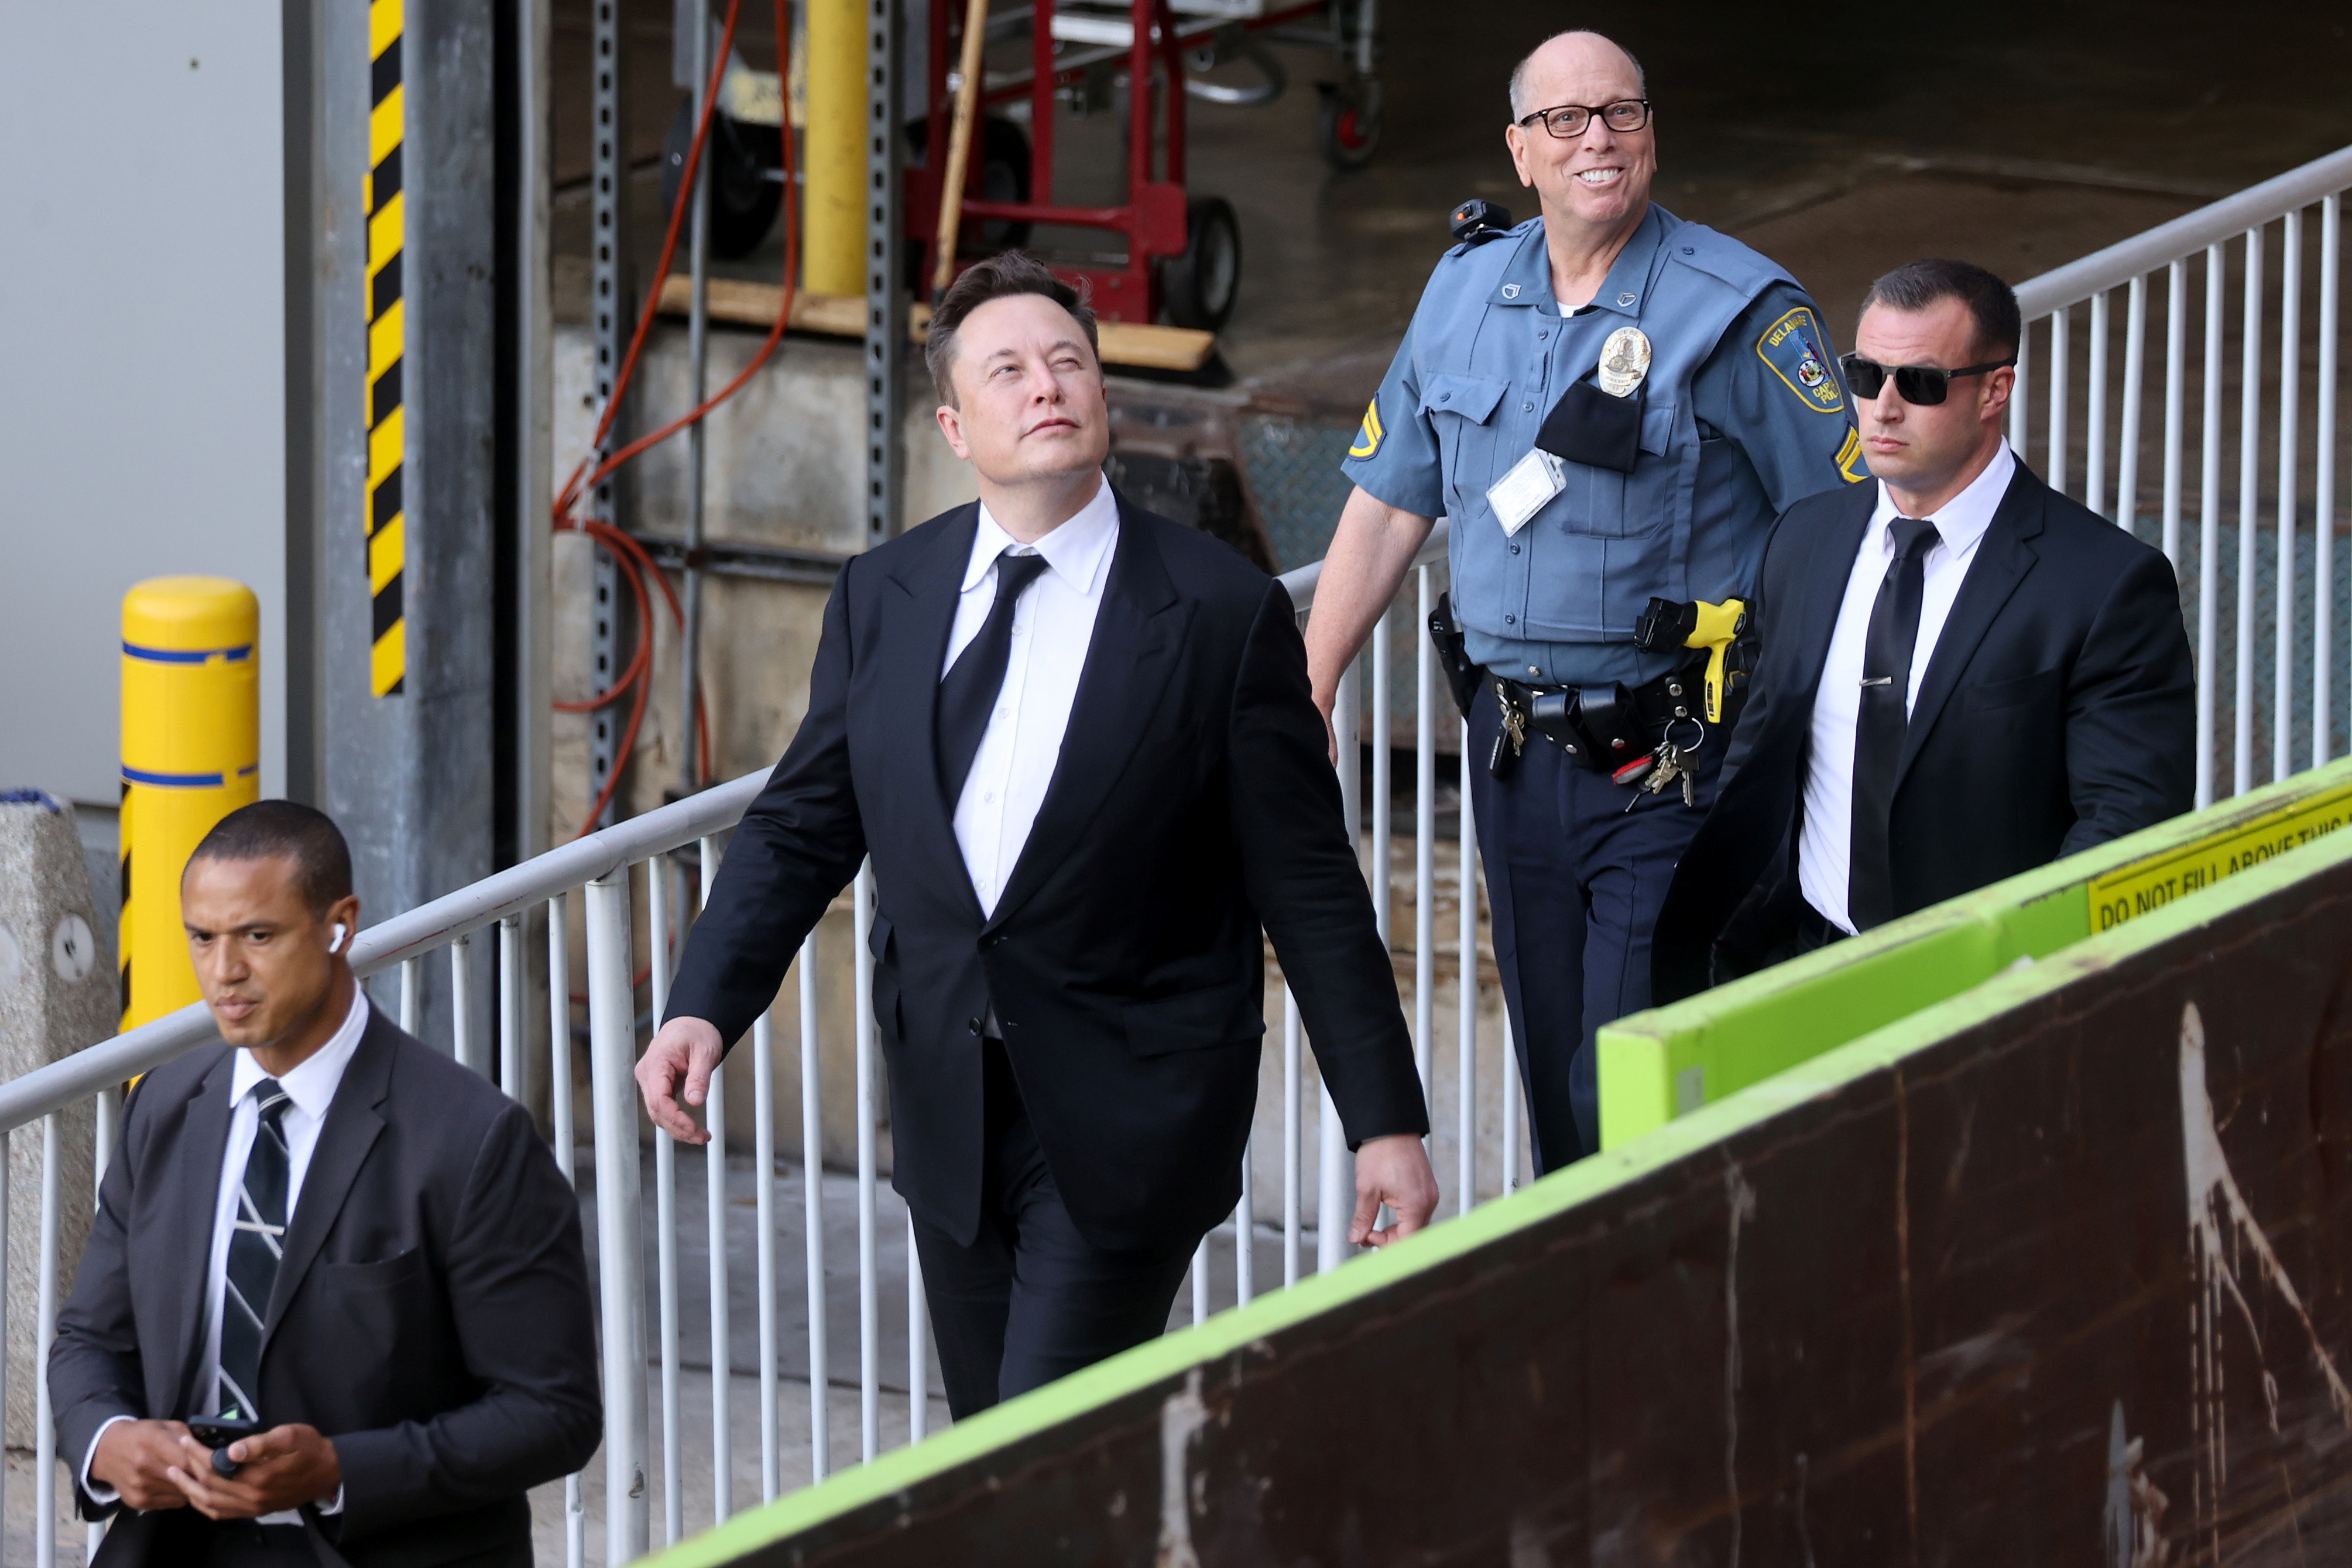 Tesla CEO Elon Musk reacts to onlookers as he departs after taking the stand to defend Tesla Inc's 2016 deal for SolarCity in a case before the Delaware Court of Chancery in Wilmington, Delaware, U.S. July 12, 2021. REUTERS/Jonathan Ernst